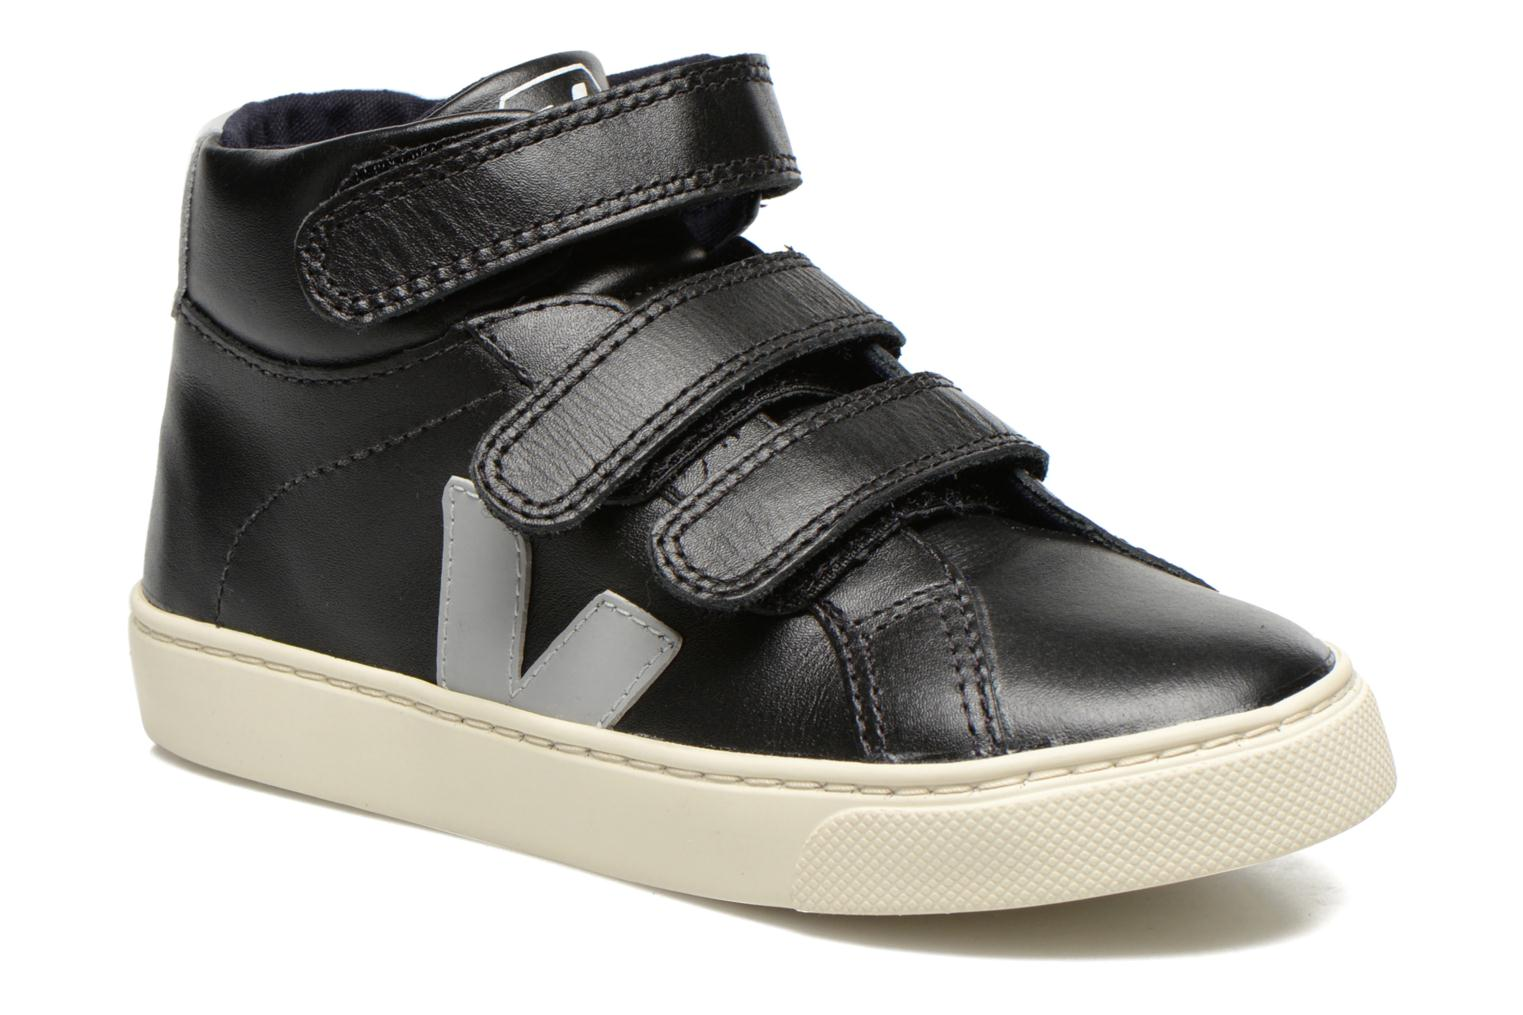 Sneakers ESPLAR MID SMALL VELCRO LEATHER by Veja